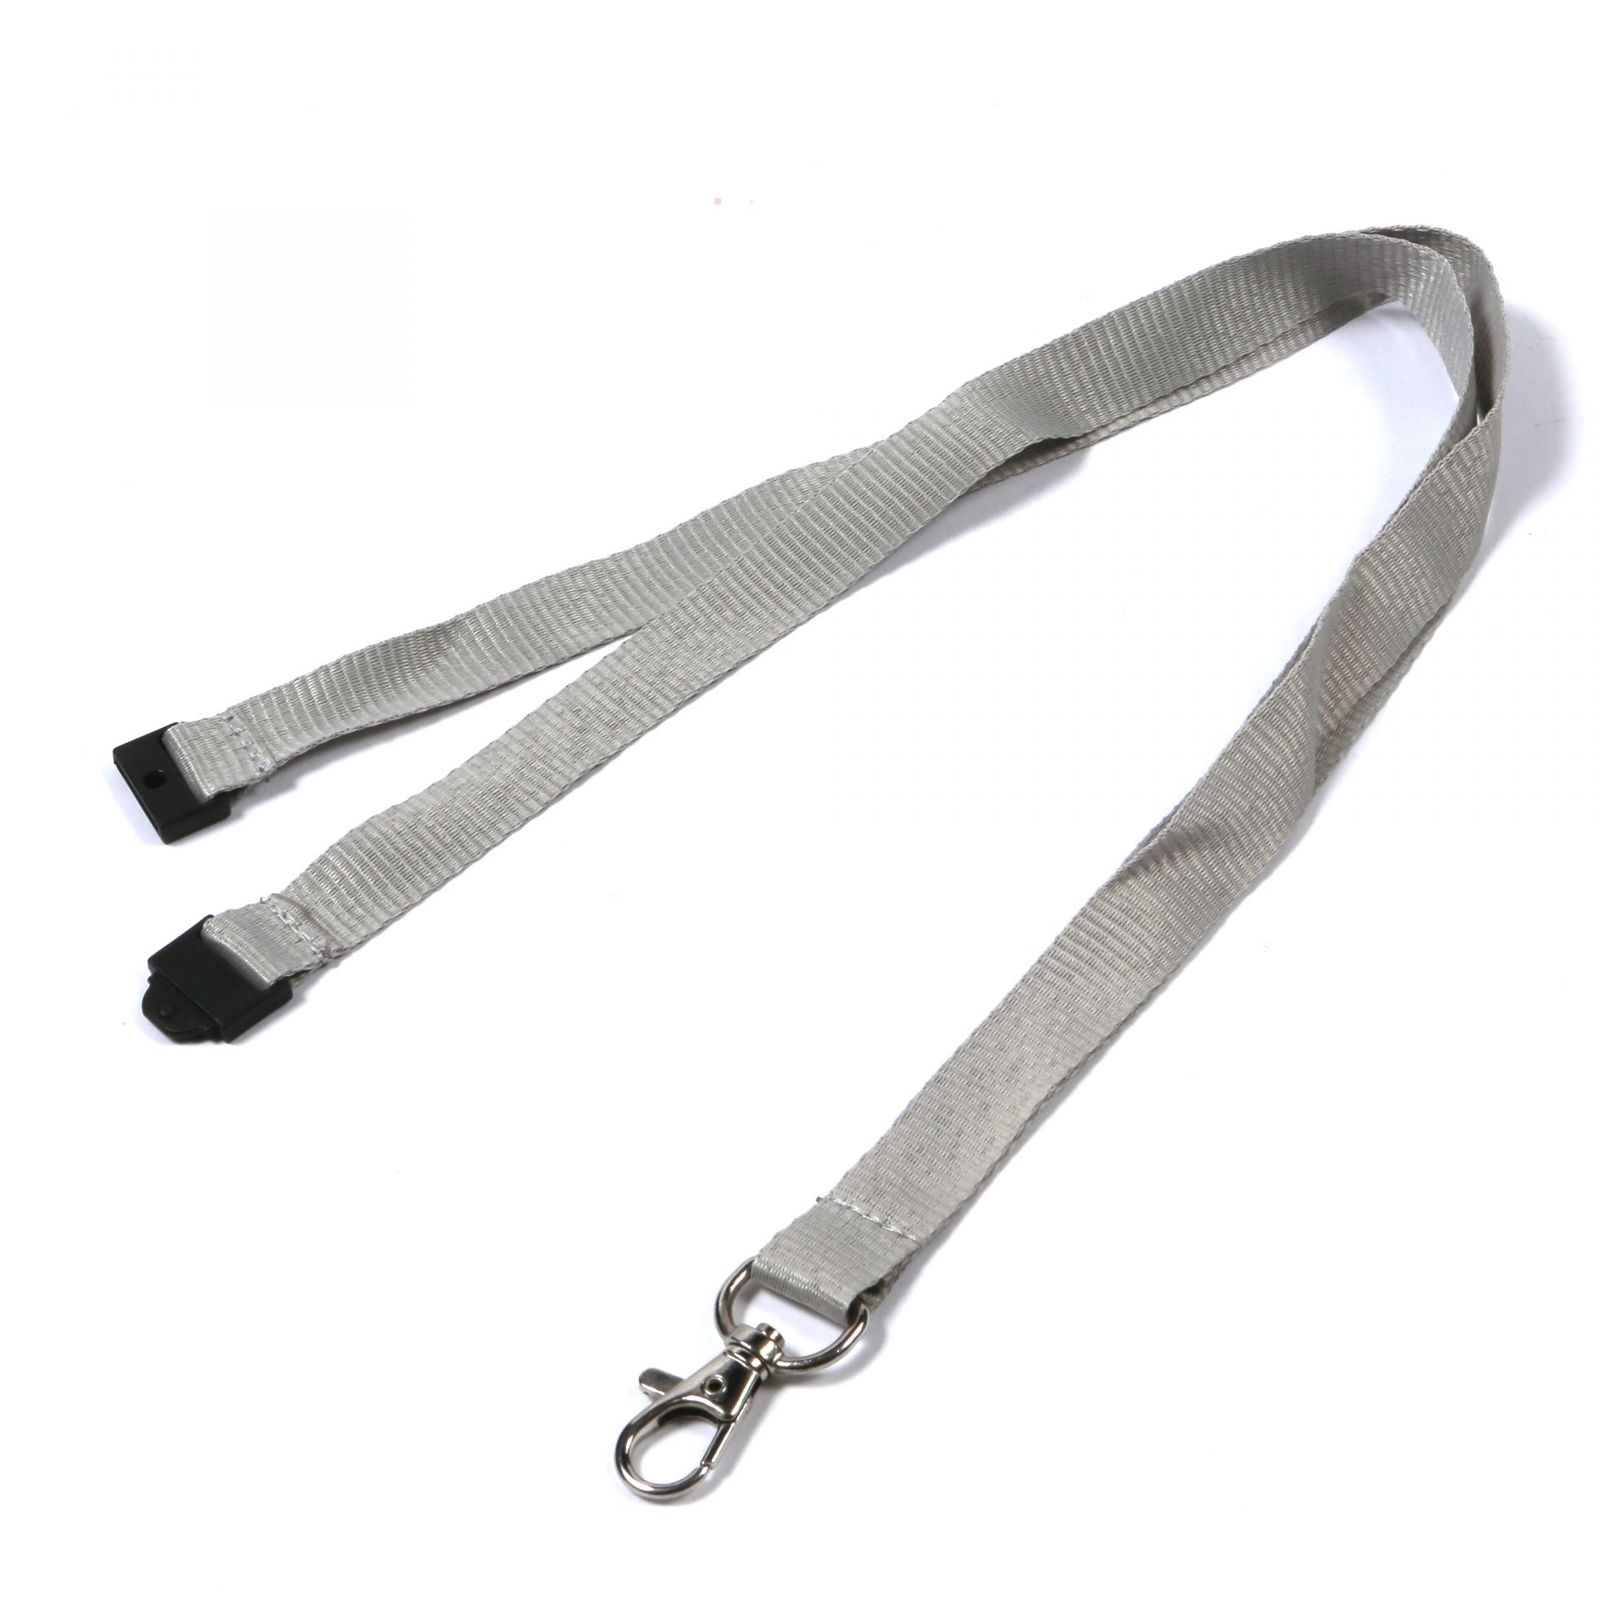 Buy Plain Grey Lanyards on Lanyards Direct Today!